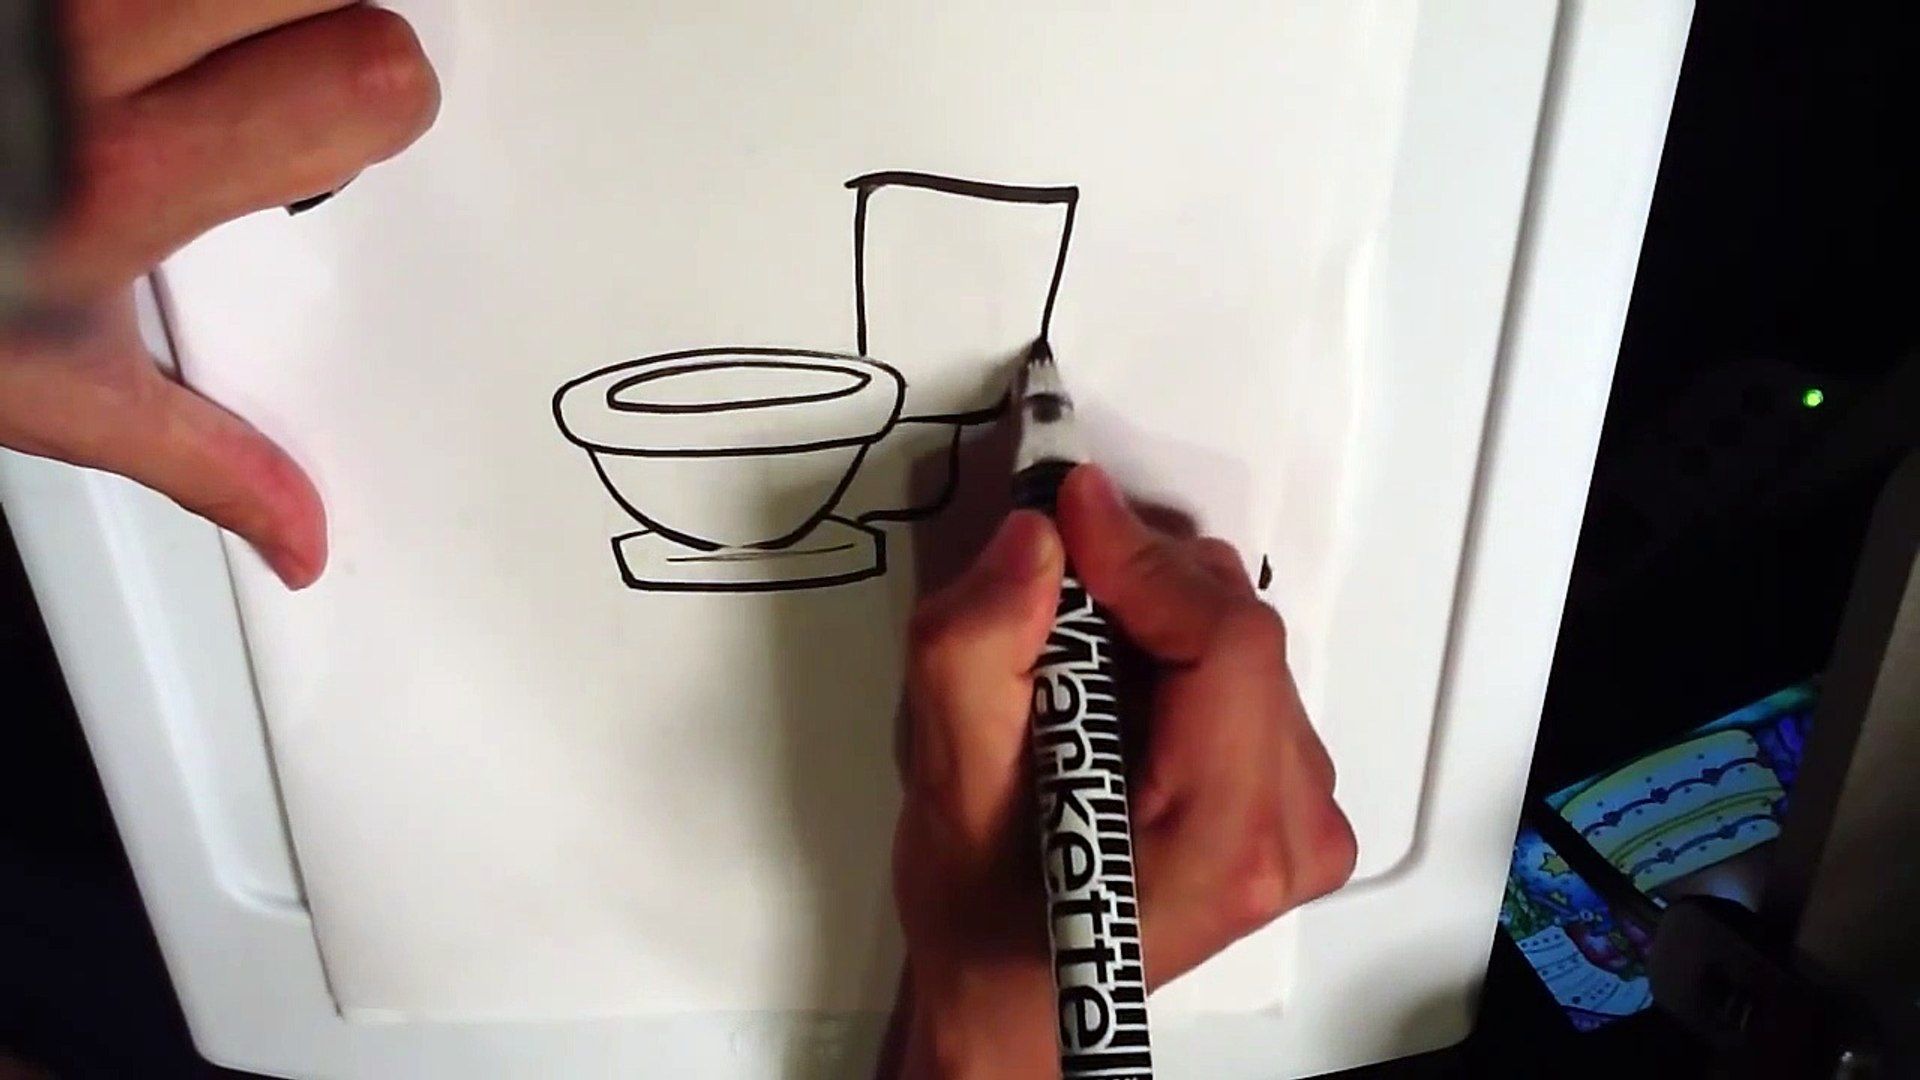 How to Draw a Toilet - Easy Things To Draw